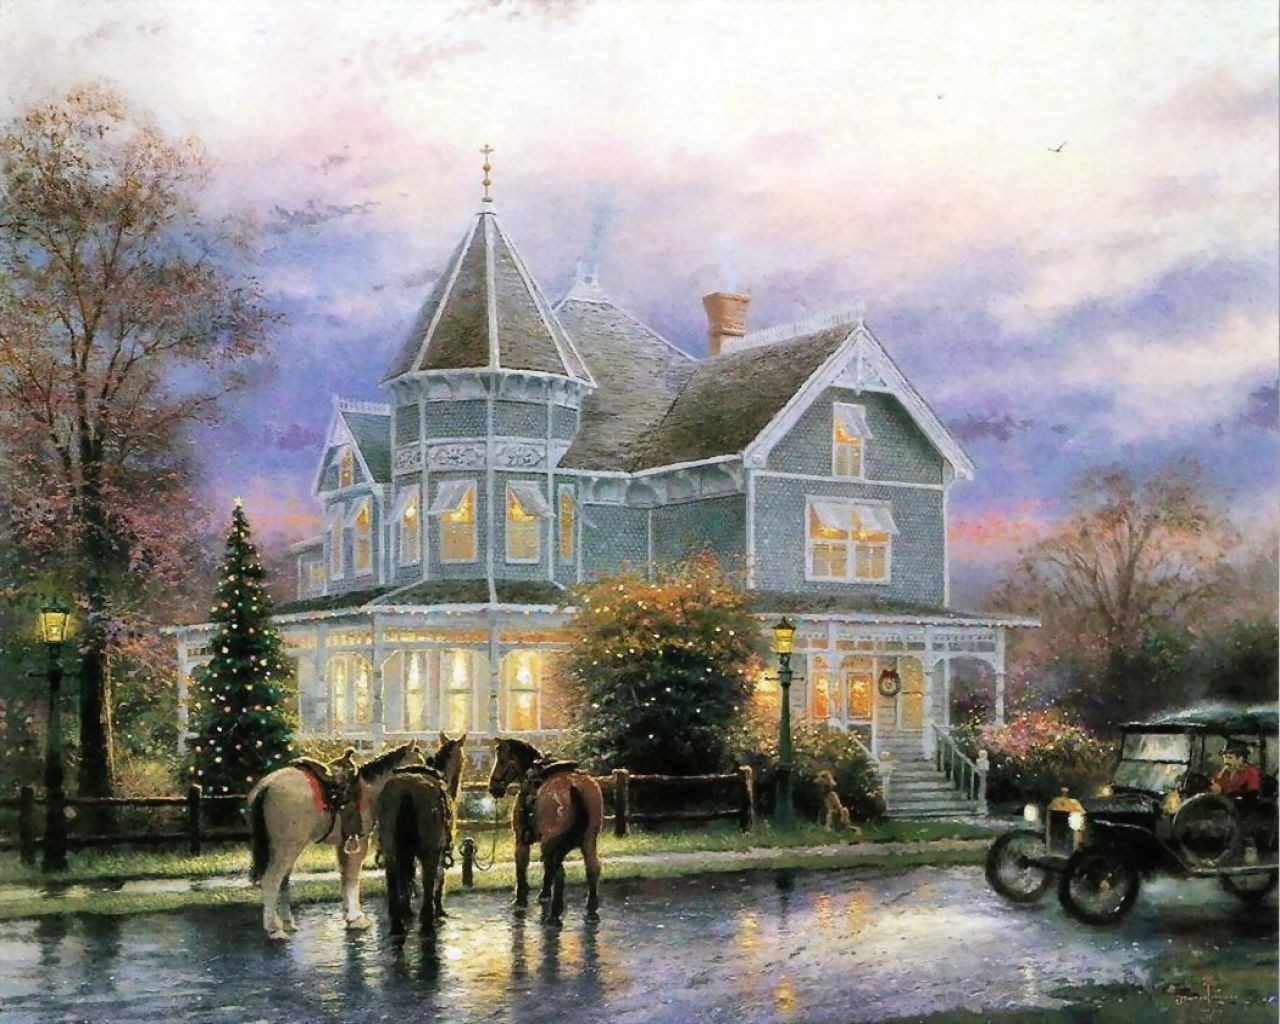 Thomas Kinkade - a beautiful house